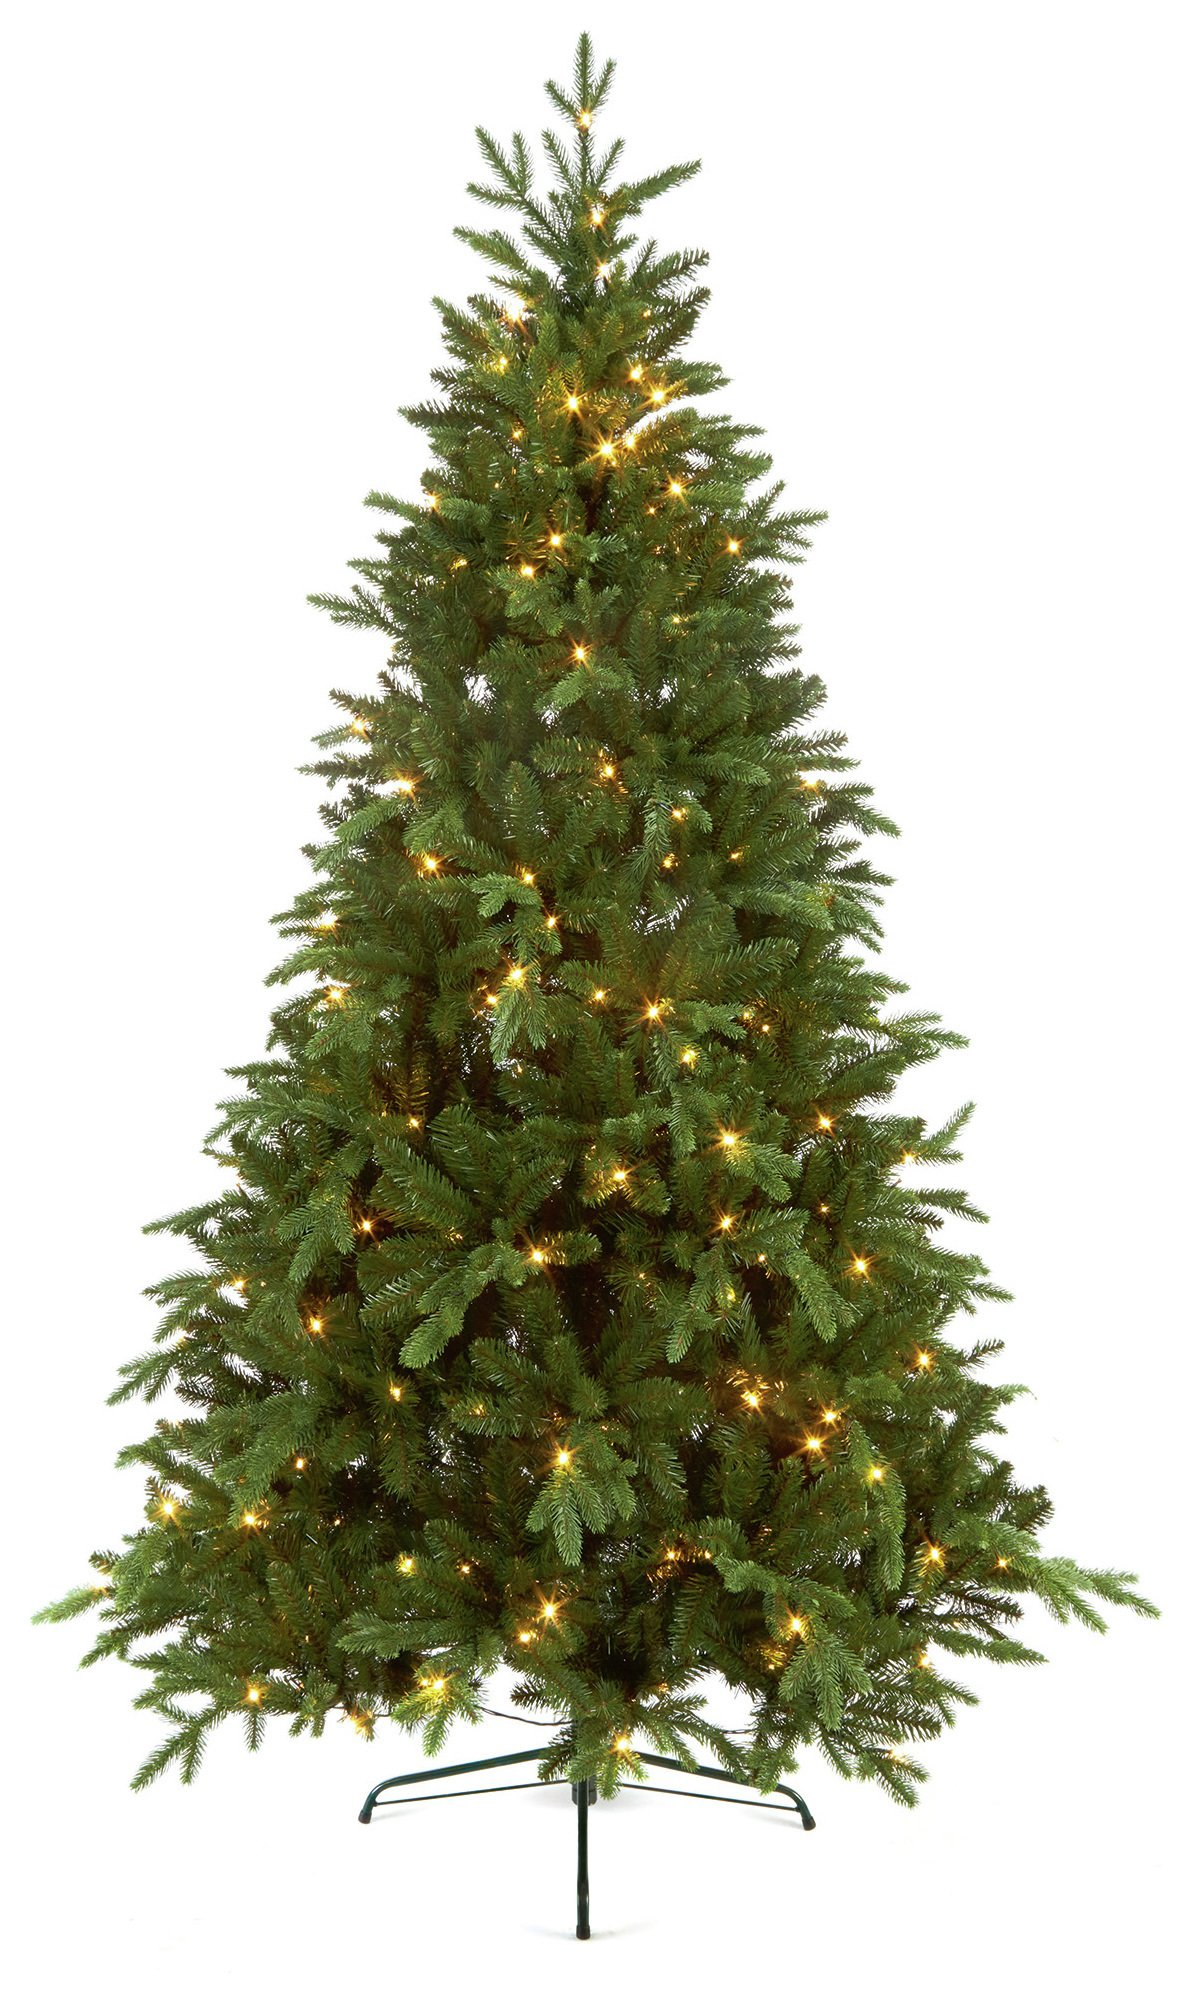 chesterfield-6ft-christmas-tree-with-easy-connect-lights